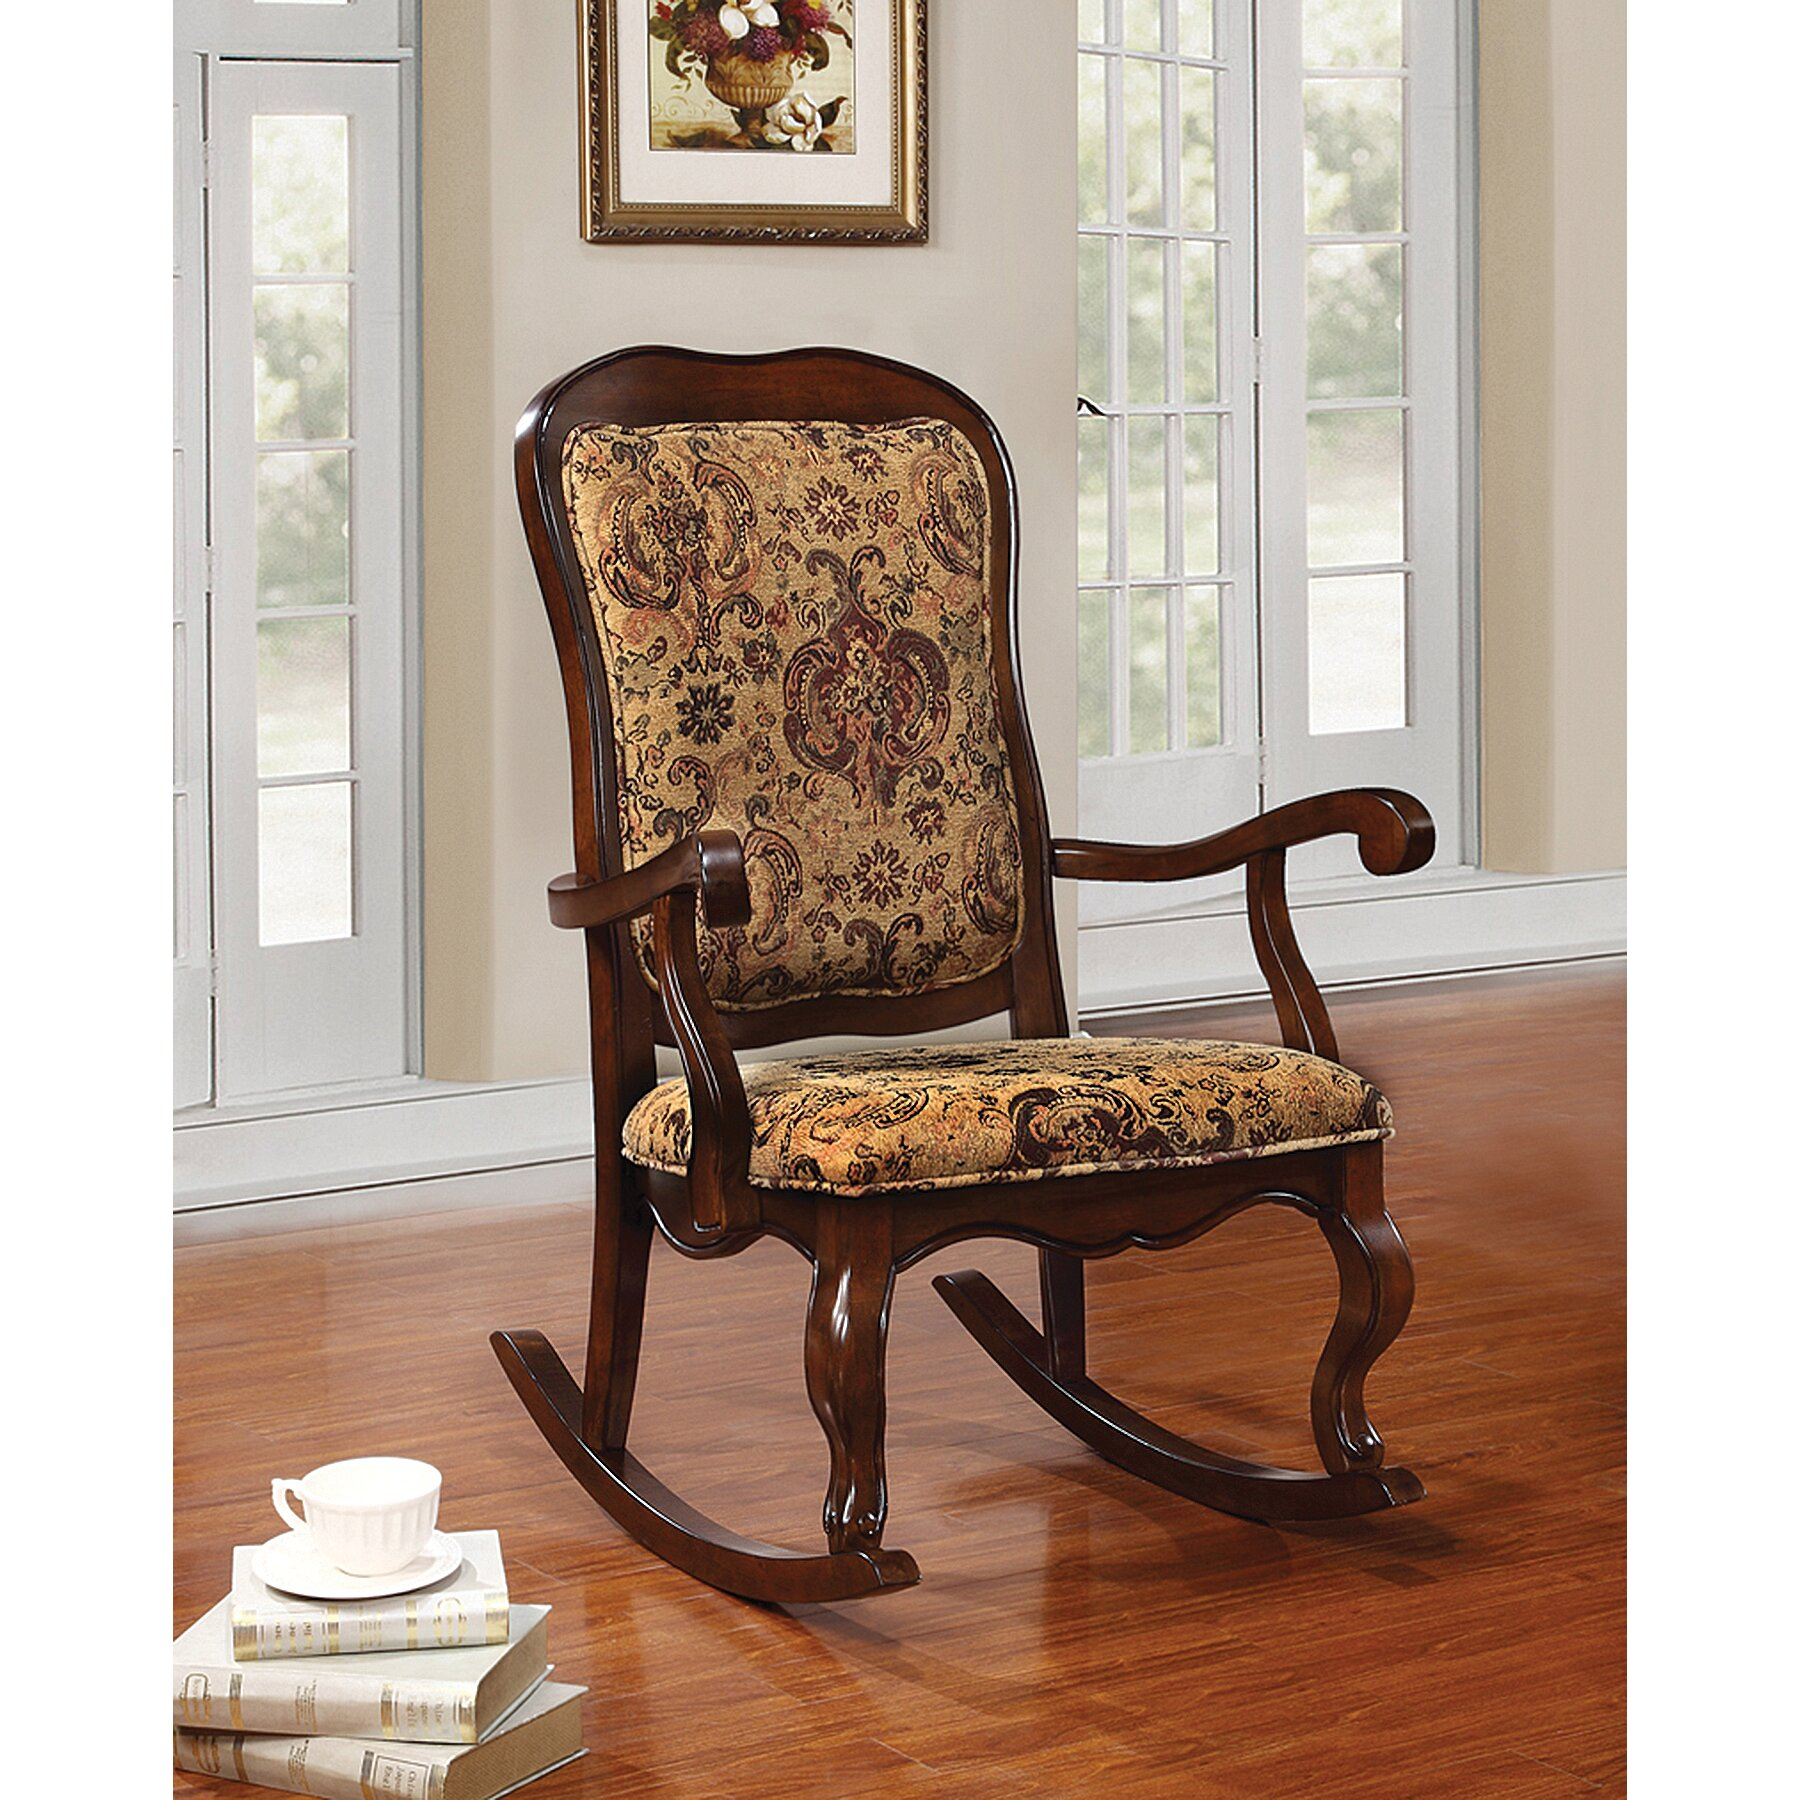 Homes Studio Queenie Rocking Chair Wayfair. Full resolution‎  portraiture, nominally Width 1800 Height 1800 pixels, portraiture with #7B4125.